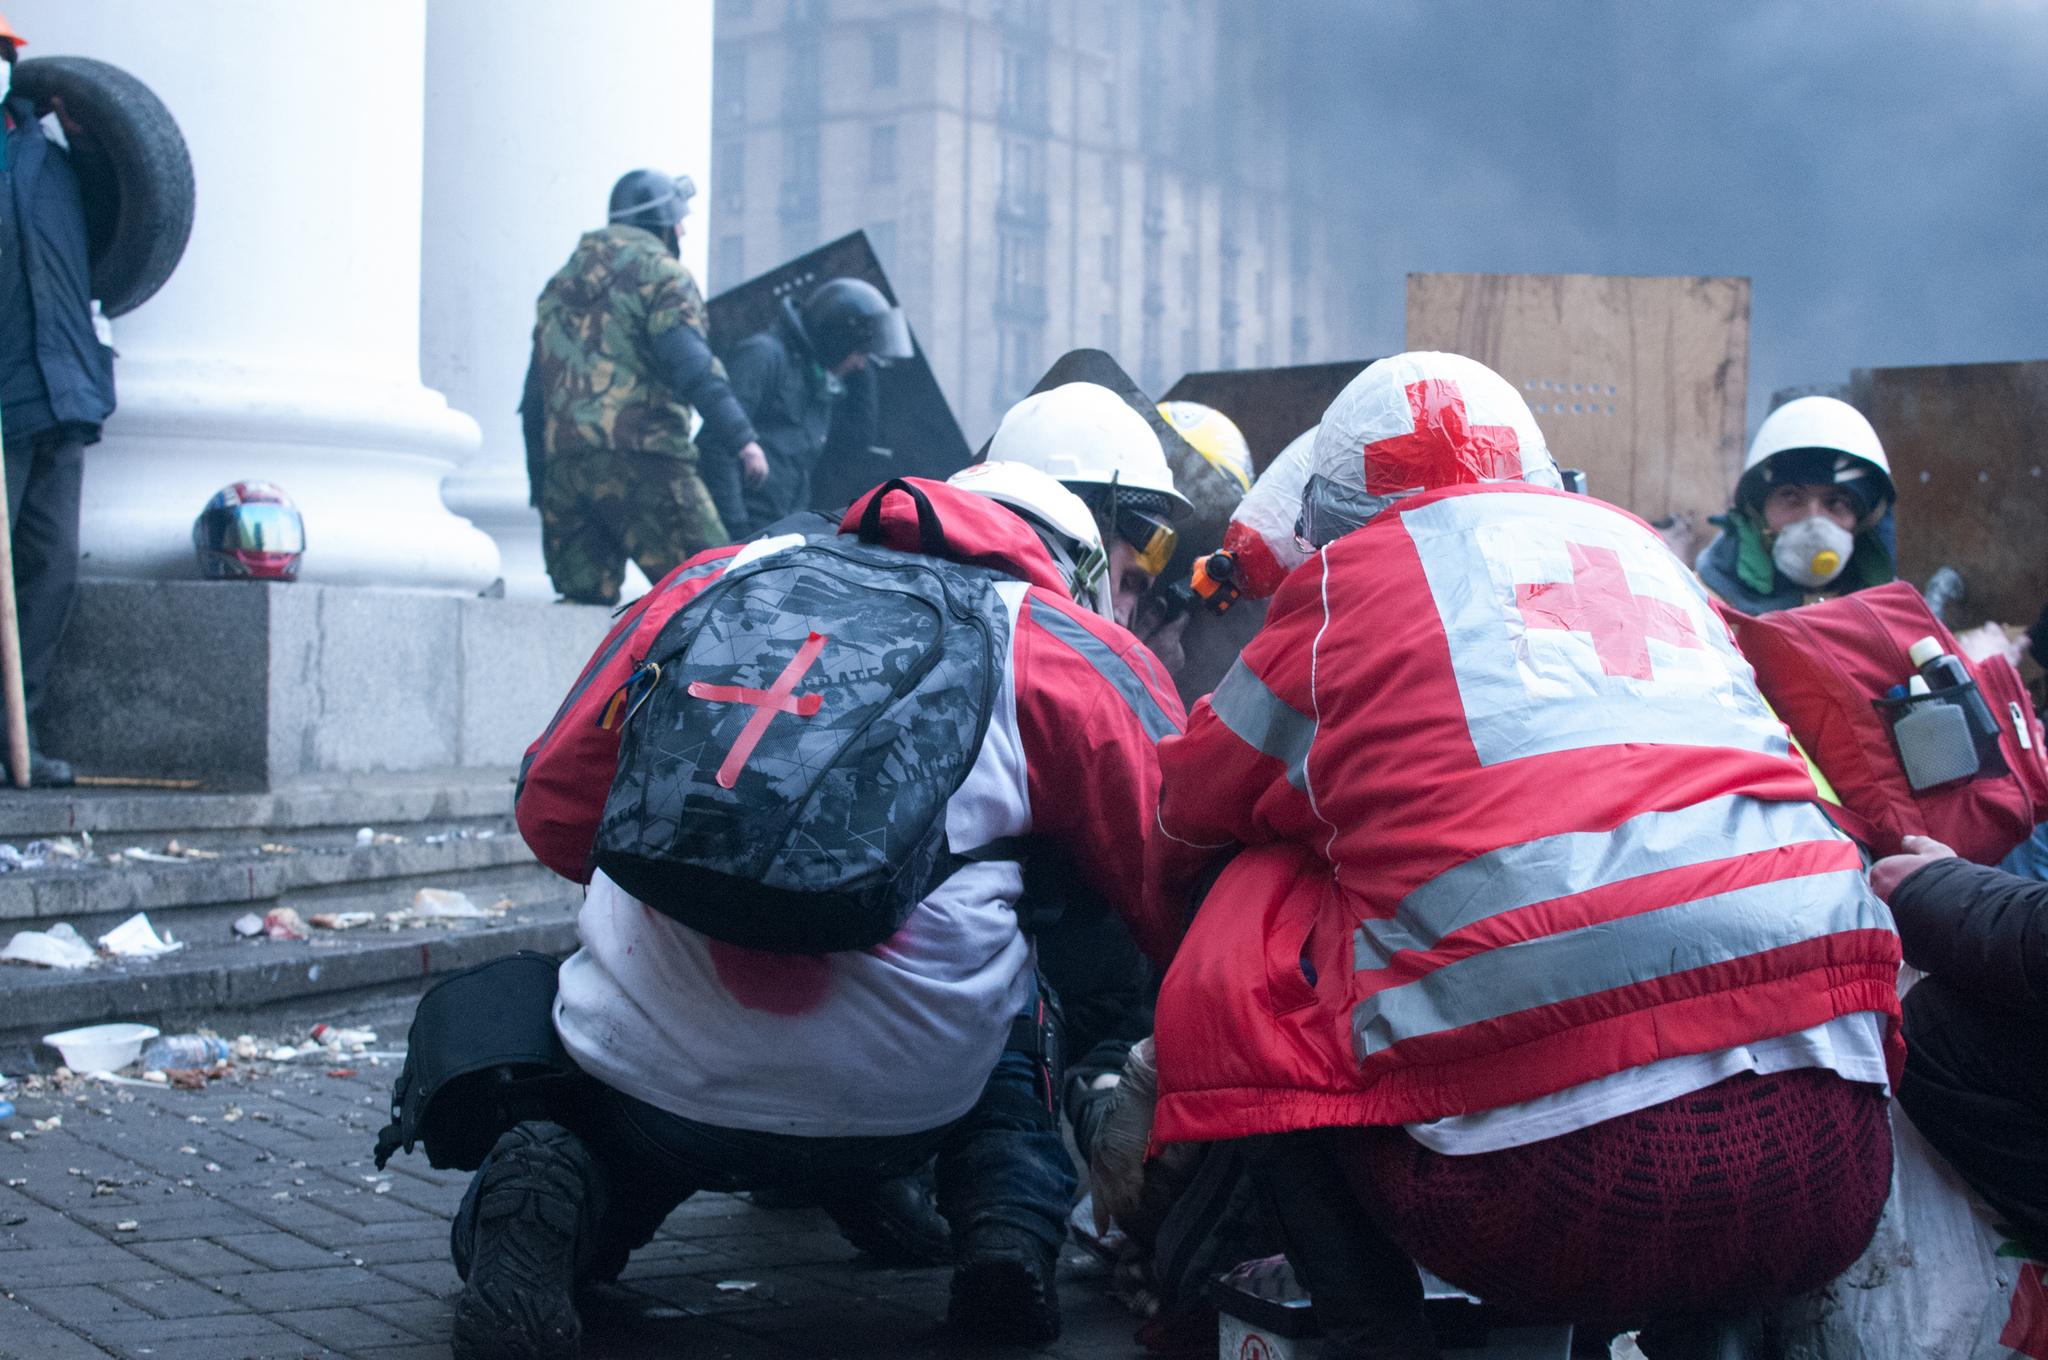 Volunteer medics attend to the wounded